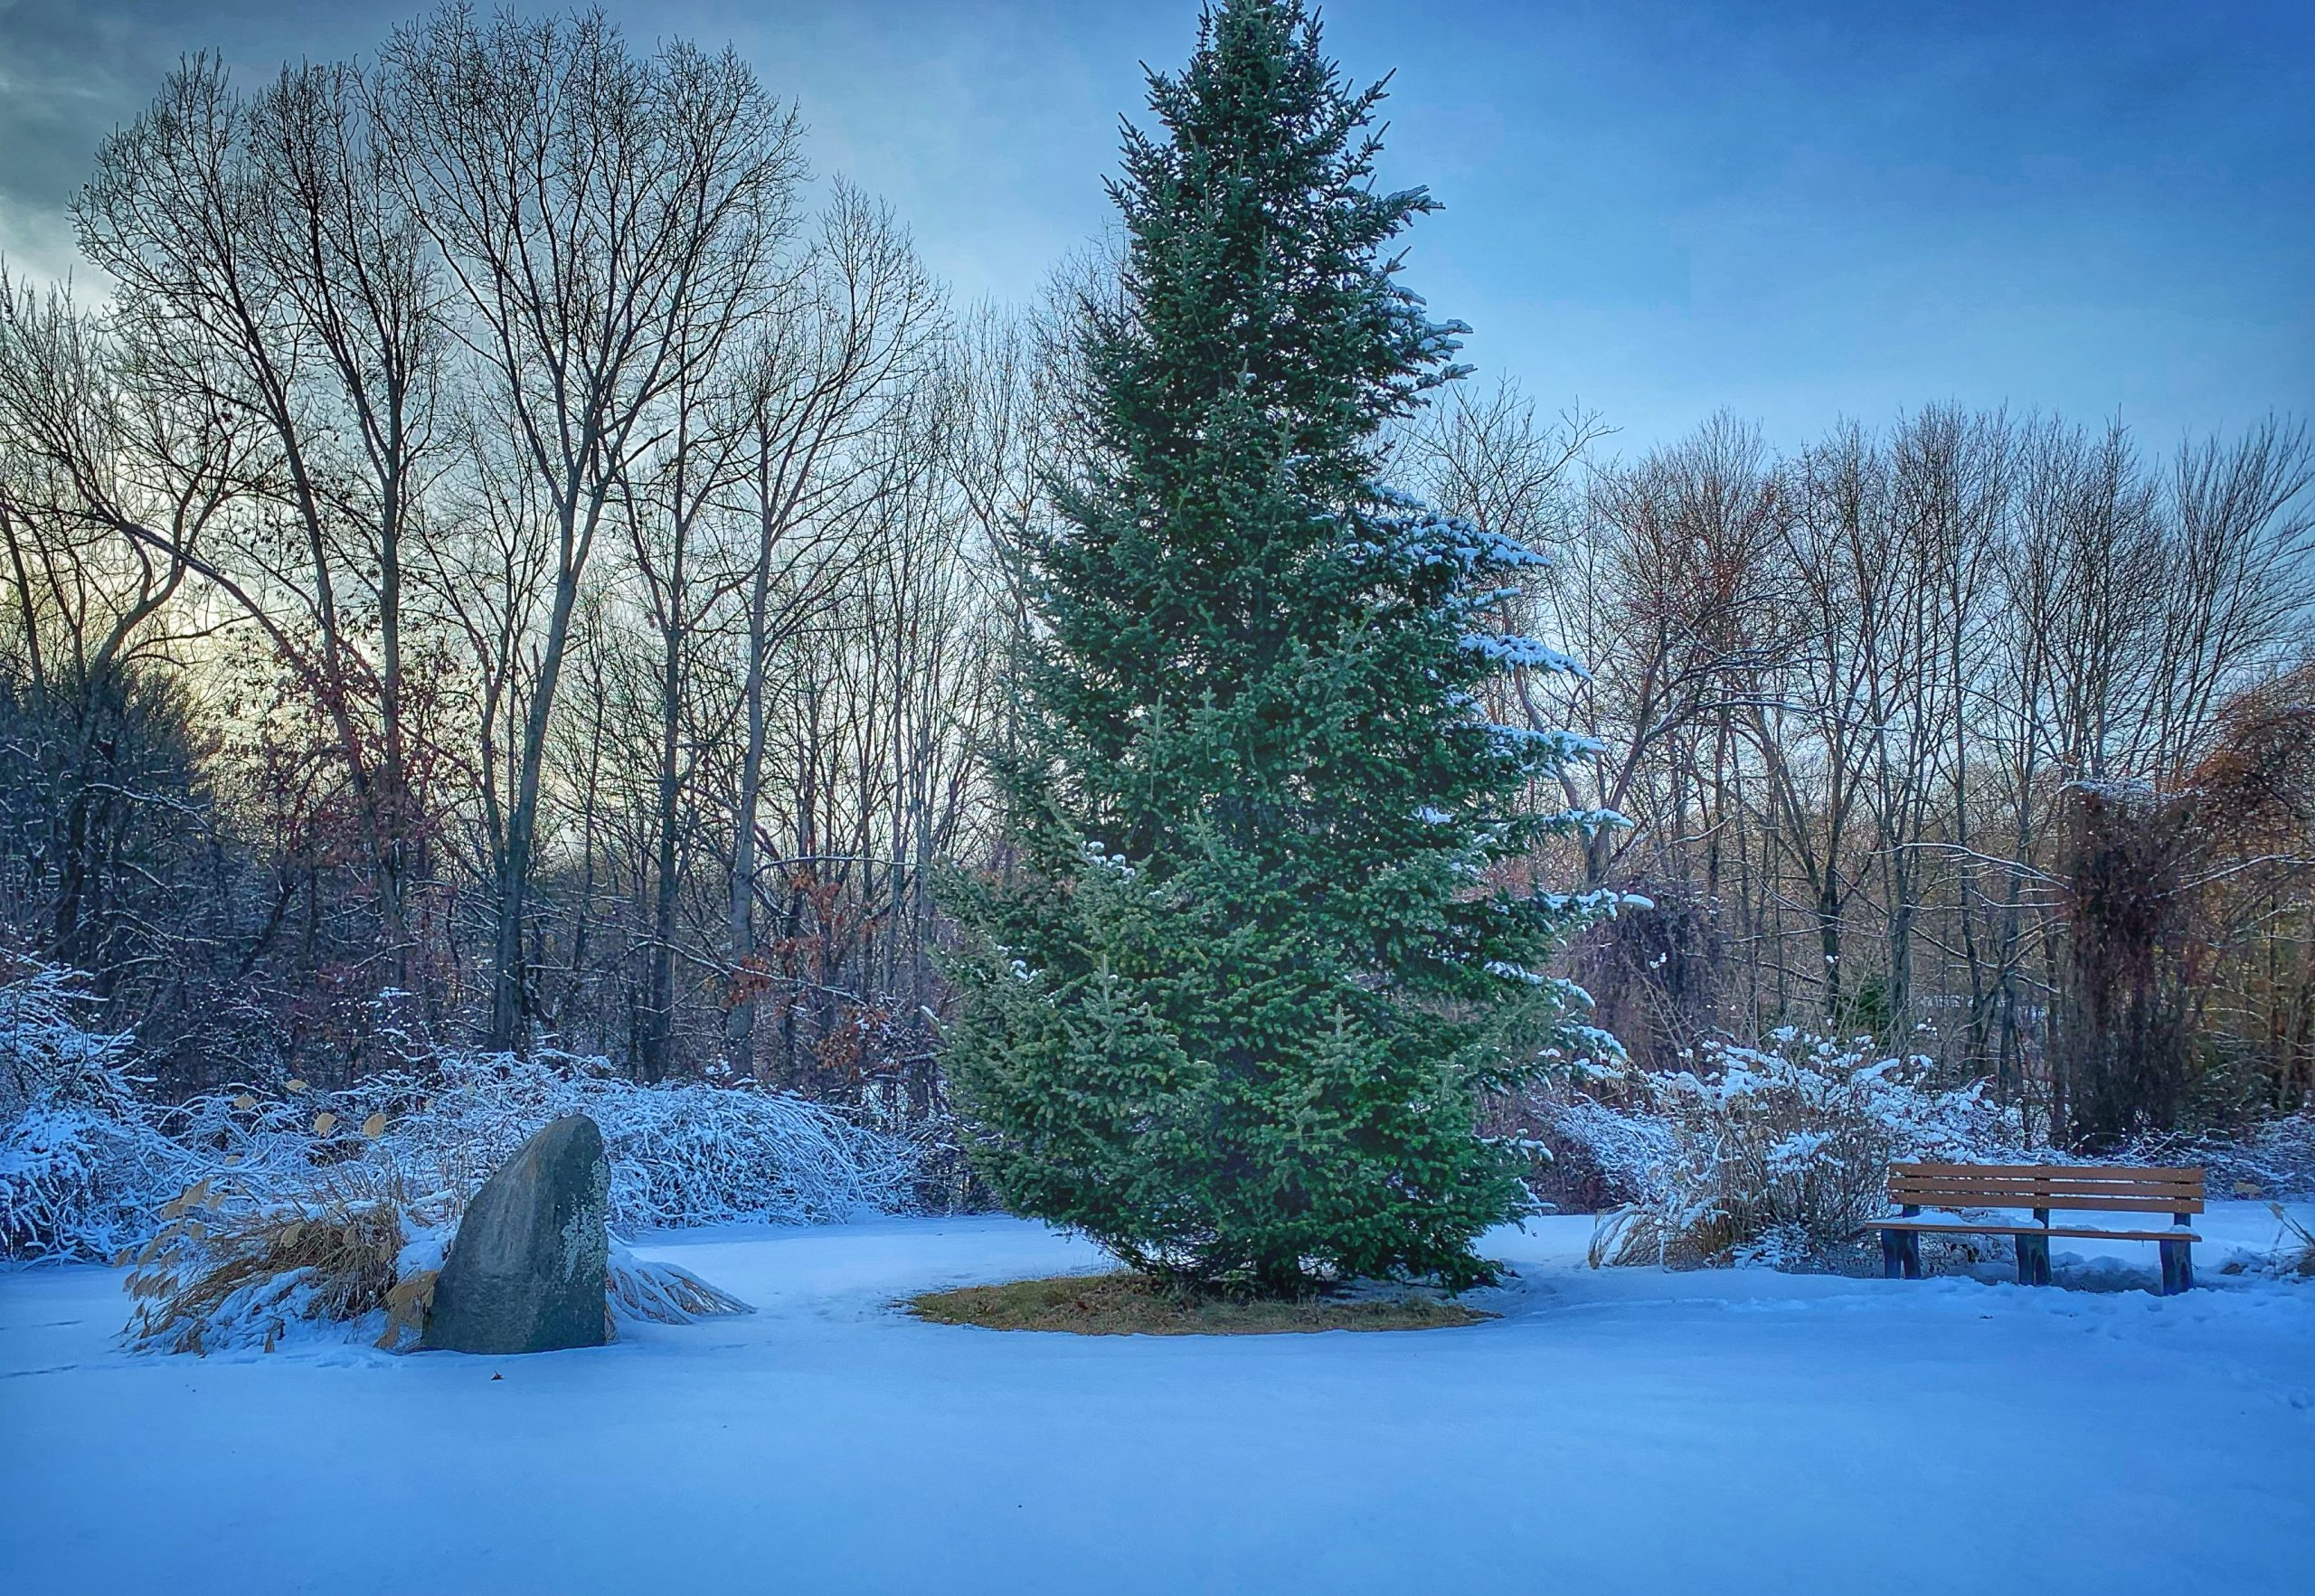 The site of New England's First Decorated Christmas Tree in Windsor-Locks, Connecticut. Photo by Jeff Belanger.